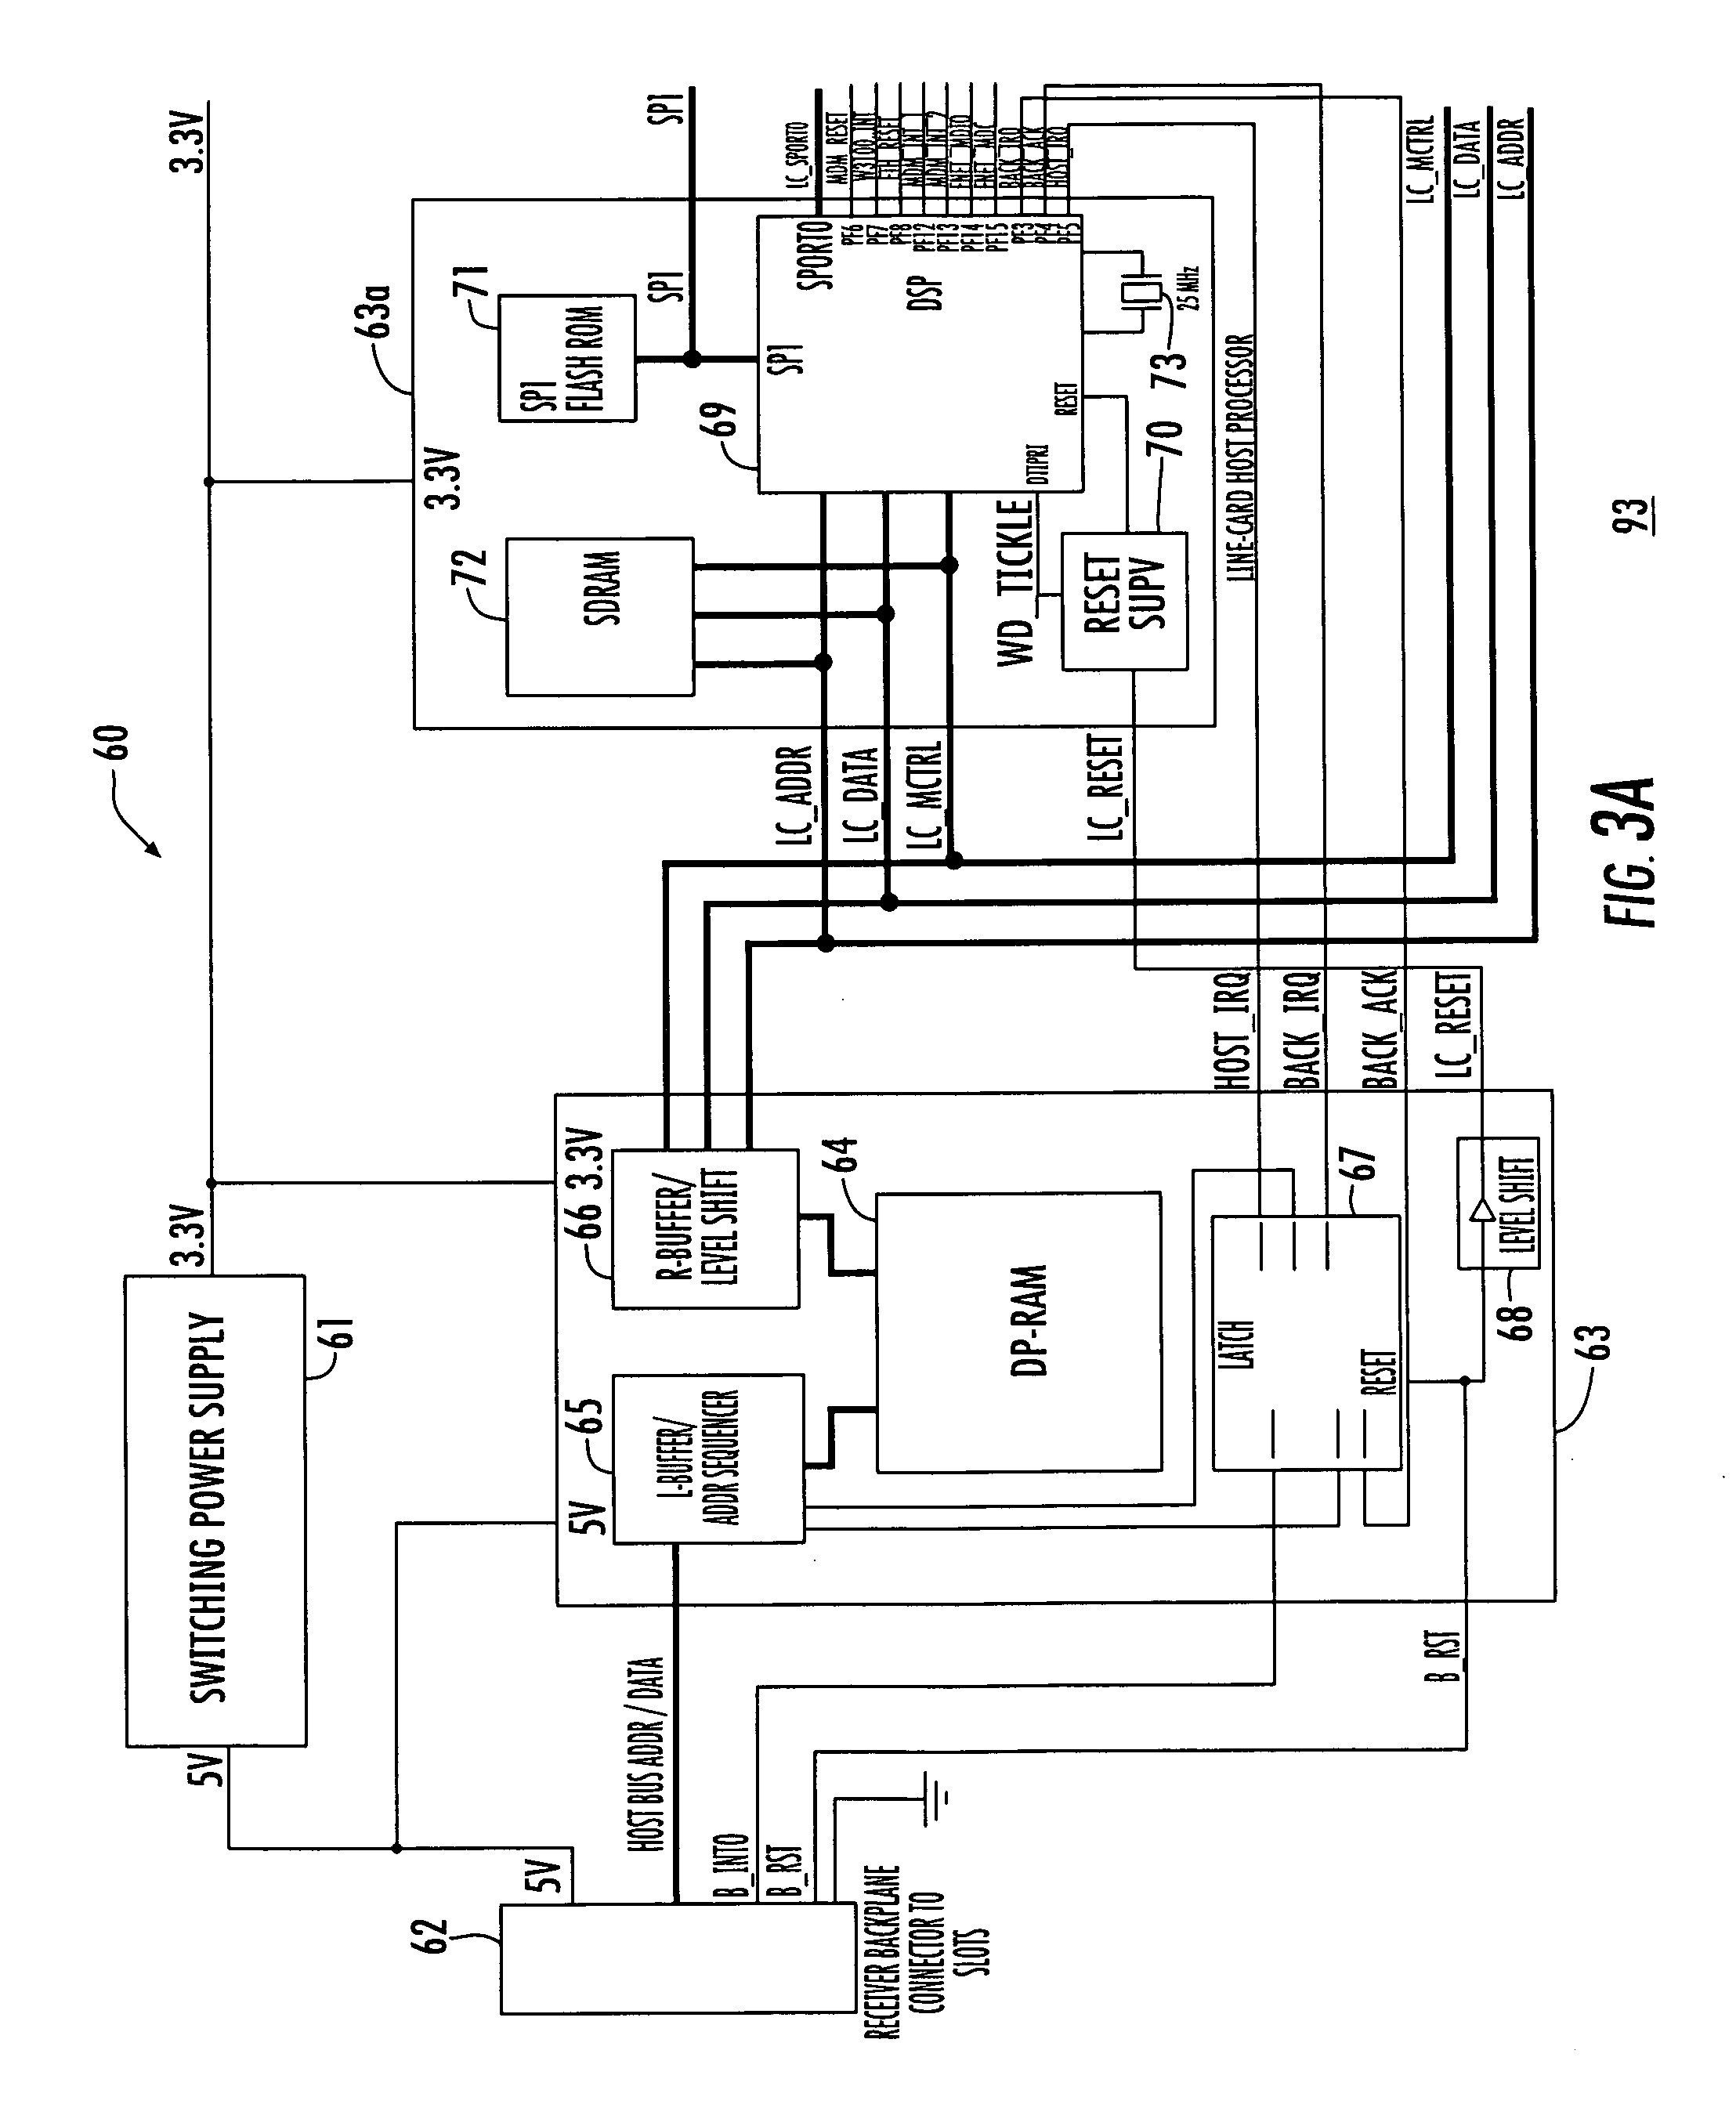 small resolution of fire alarm control module wiring diagram